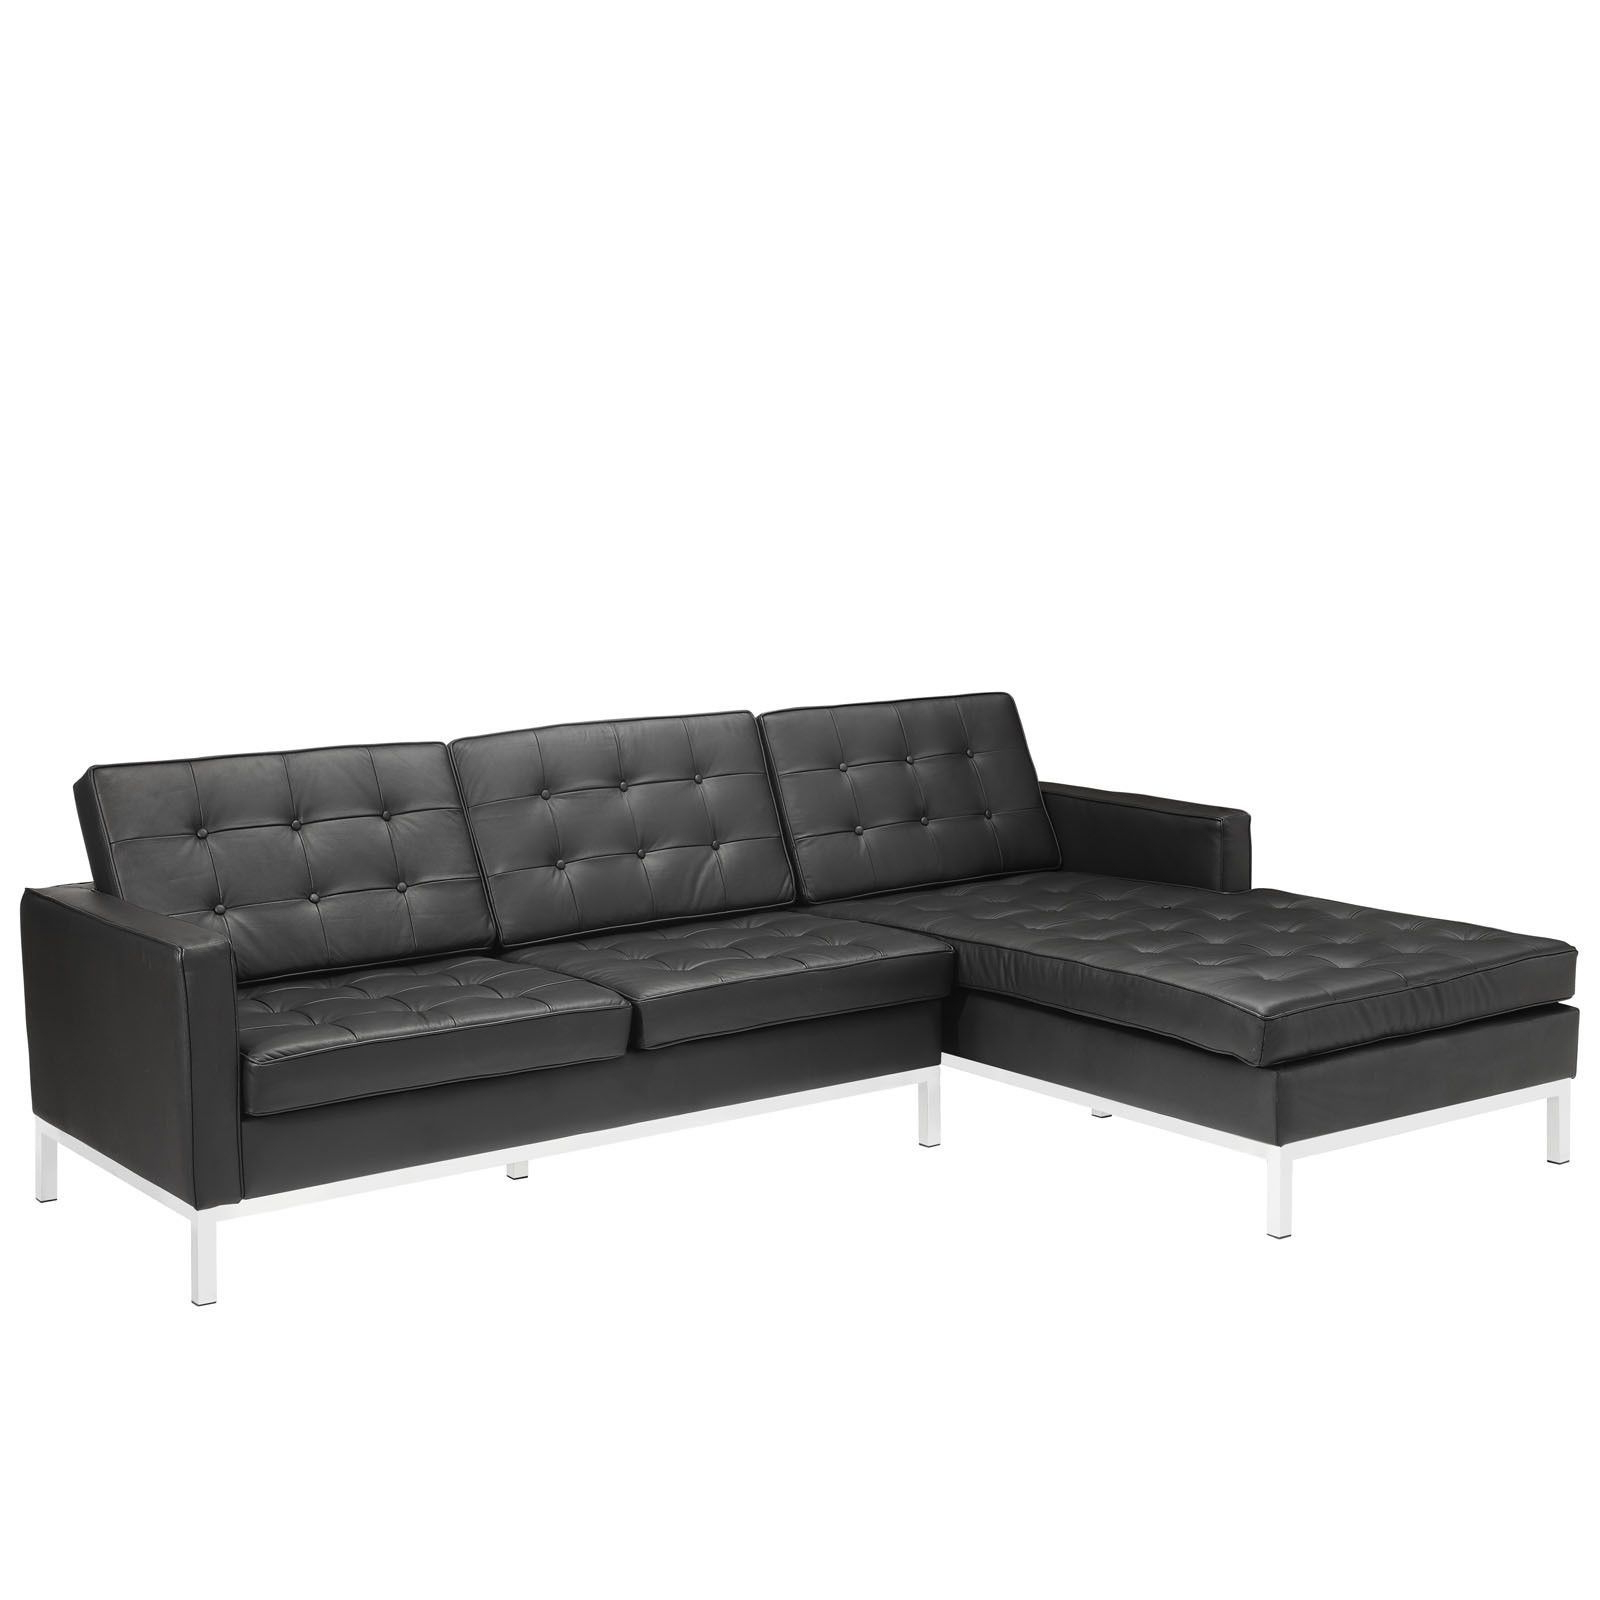 Florence Knoll Style Sectional Sofa In Black Leather Left Within Popular Florence Mid Century Modern Velvet Left Sectional Sofas (View 2 of 25)